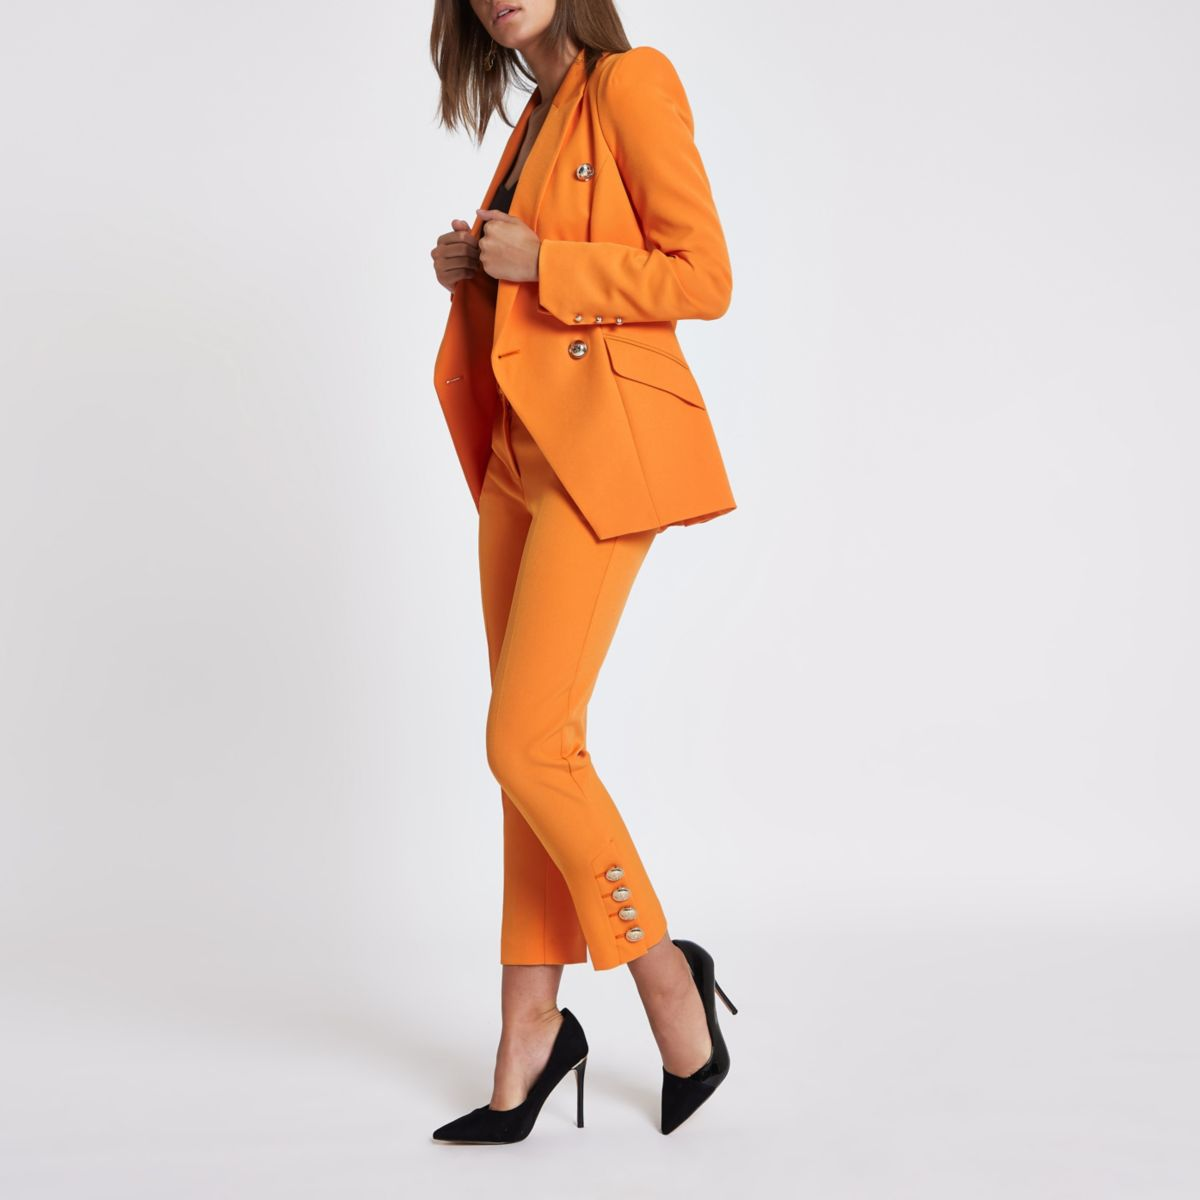 Orange gold tone button cigarette pants